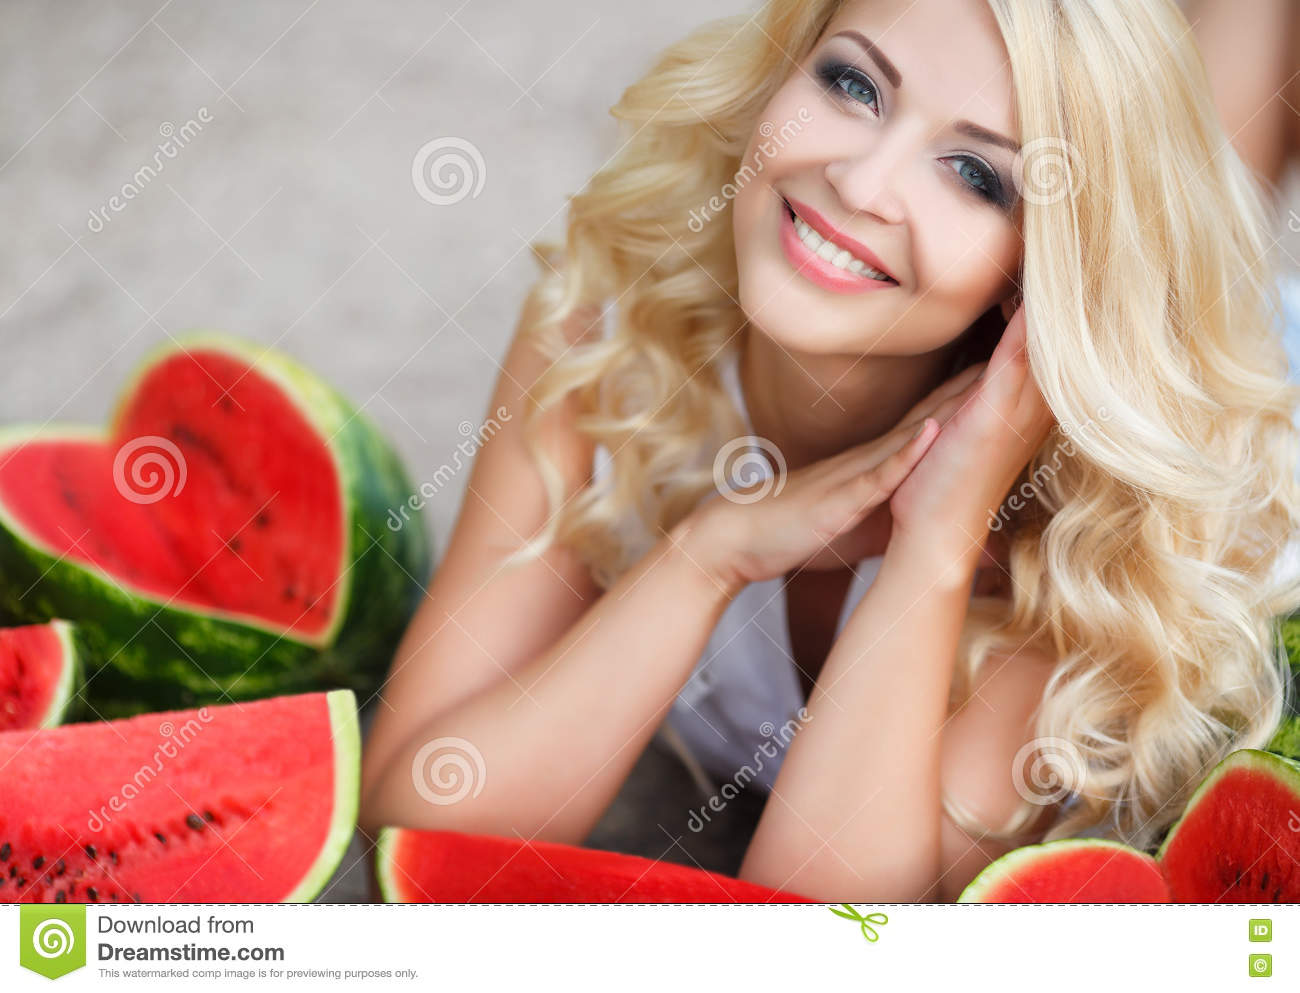 Beautiful young woman holding a slice of ripe watermelon